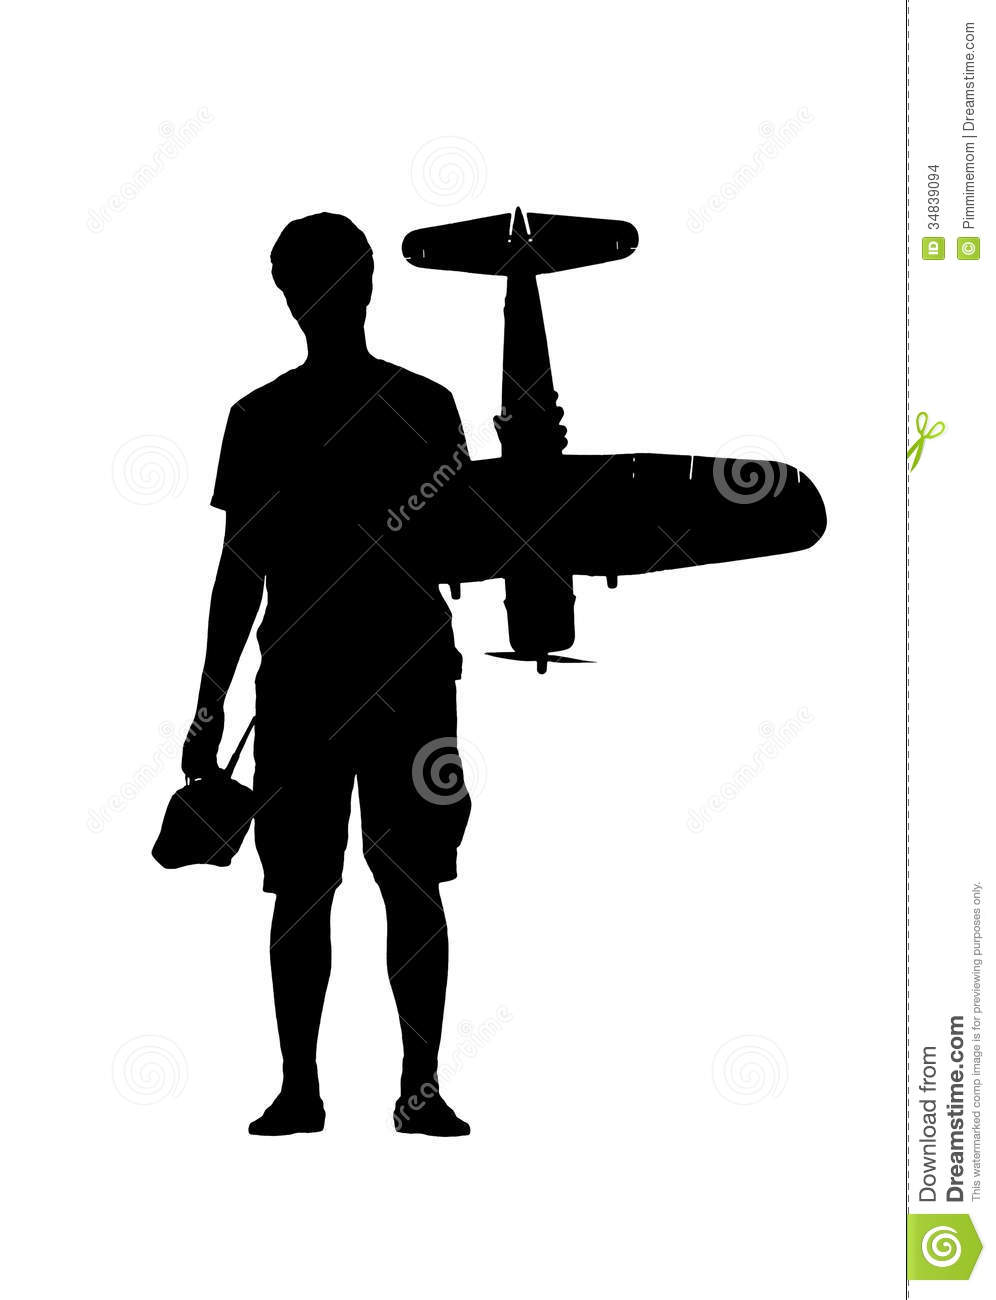 control remote airplane with Stock Images Silhouette Young Man Boy Rc Airplane Controller Black White Background Image34839094 on The Transformers Drone Switch Plane Quadcopter Touch Button additionally 181861778069 together with Cute Mini Toilet Speakers For Laptop additionally Avion Tele mande additionally 405150 32360394347.